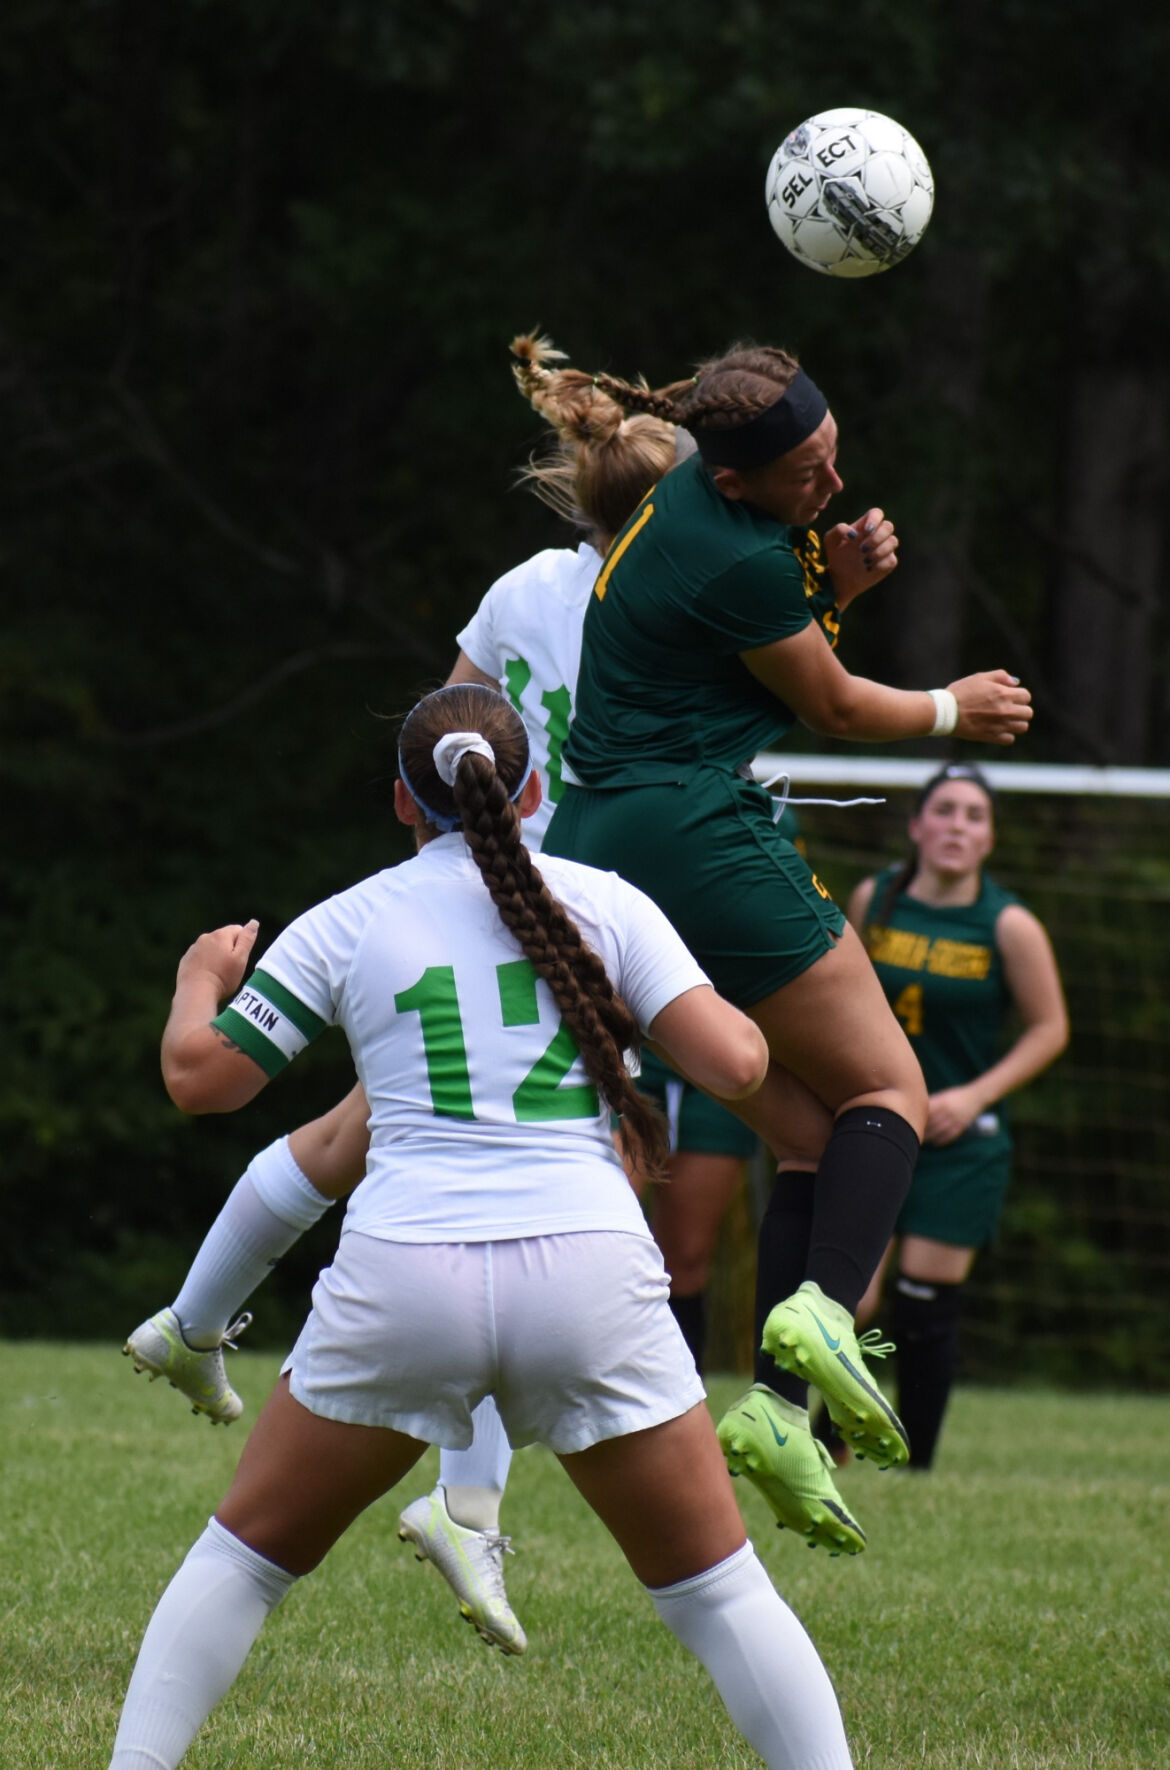 LOCAL ROUNDUP: C-GCC women's soccer falls in opener; MH golfers win first